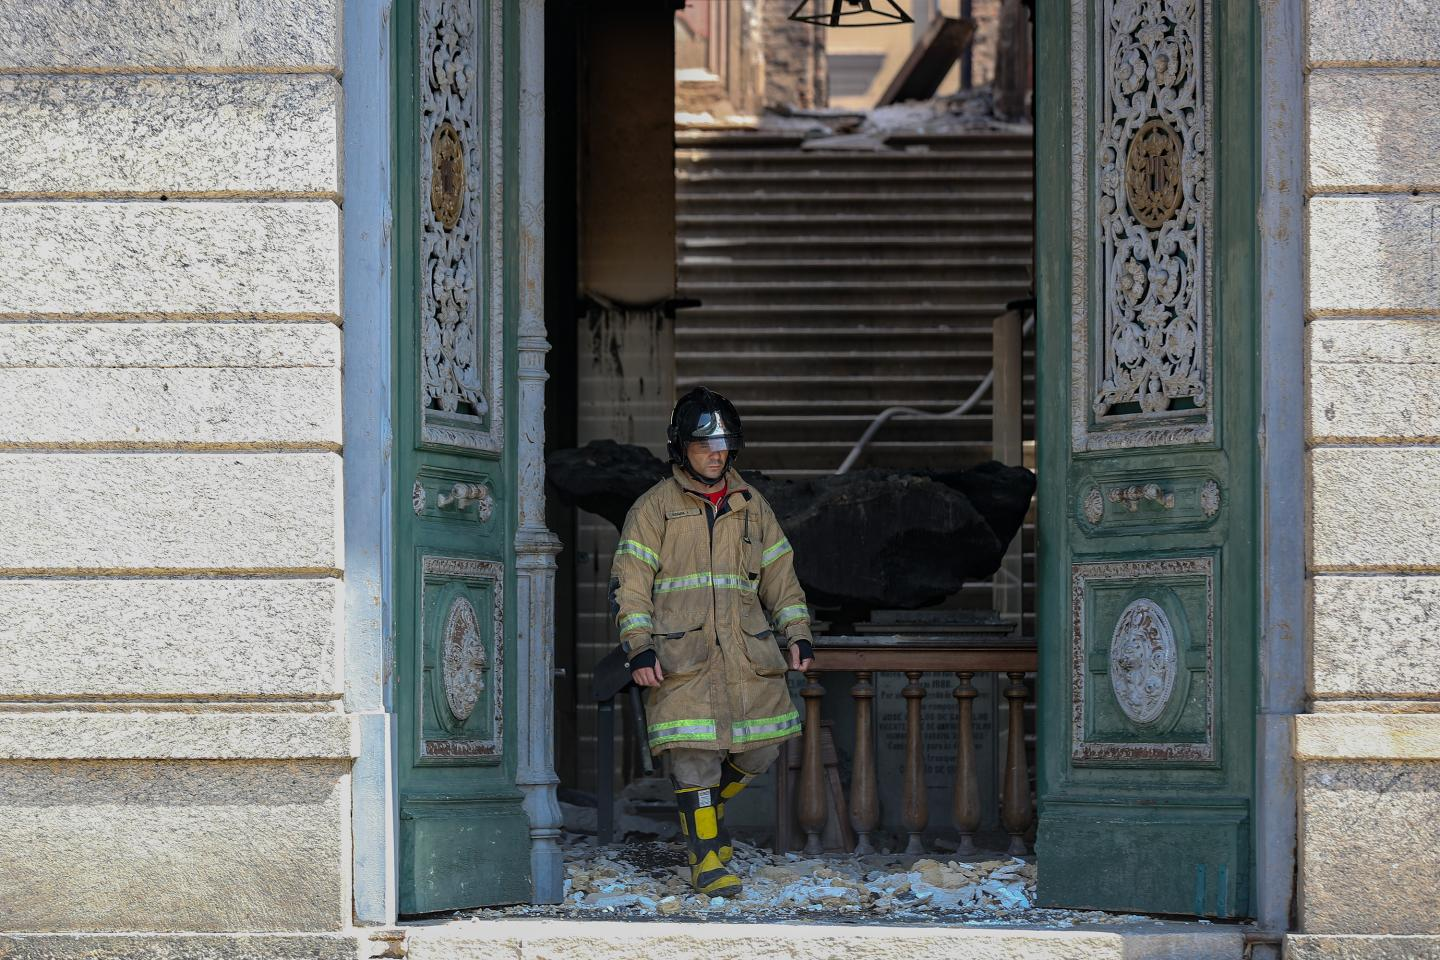 Firefighter in full uniform and equipment walking out of a burnt museum